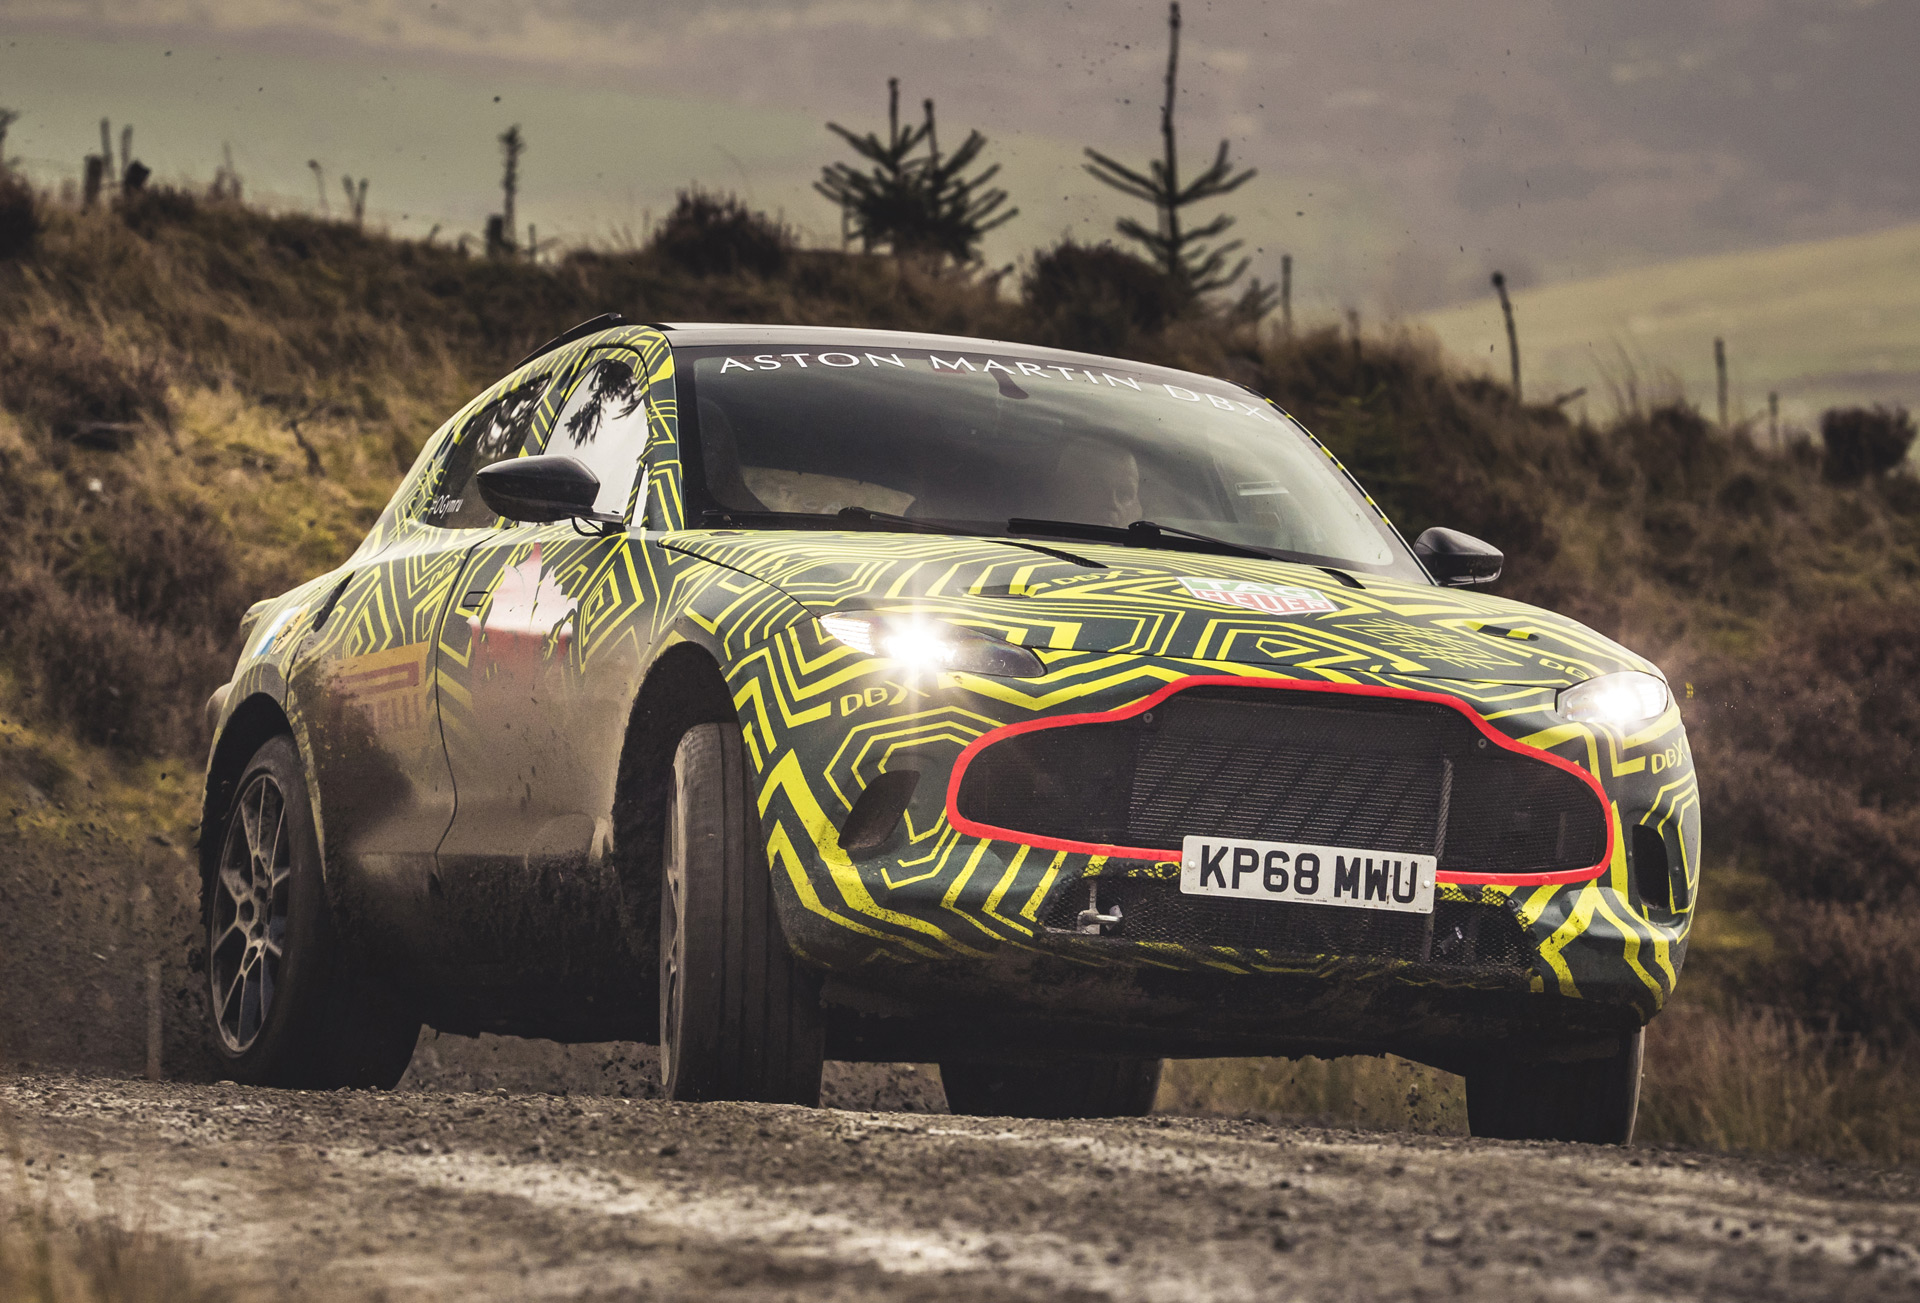 aston martin reveals dbx name, first prototype for suv